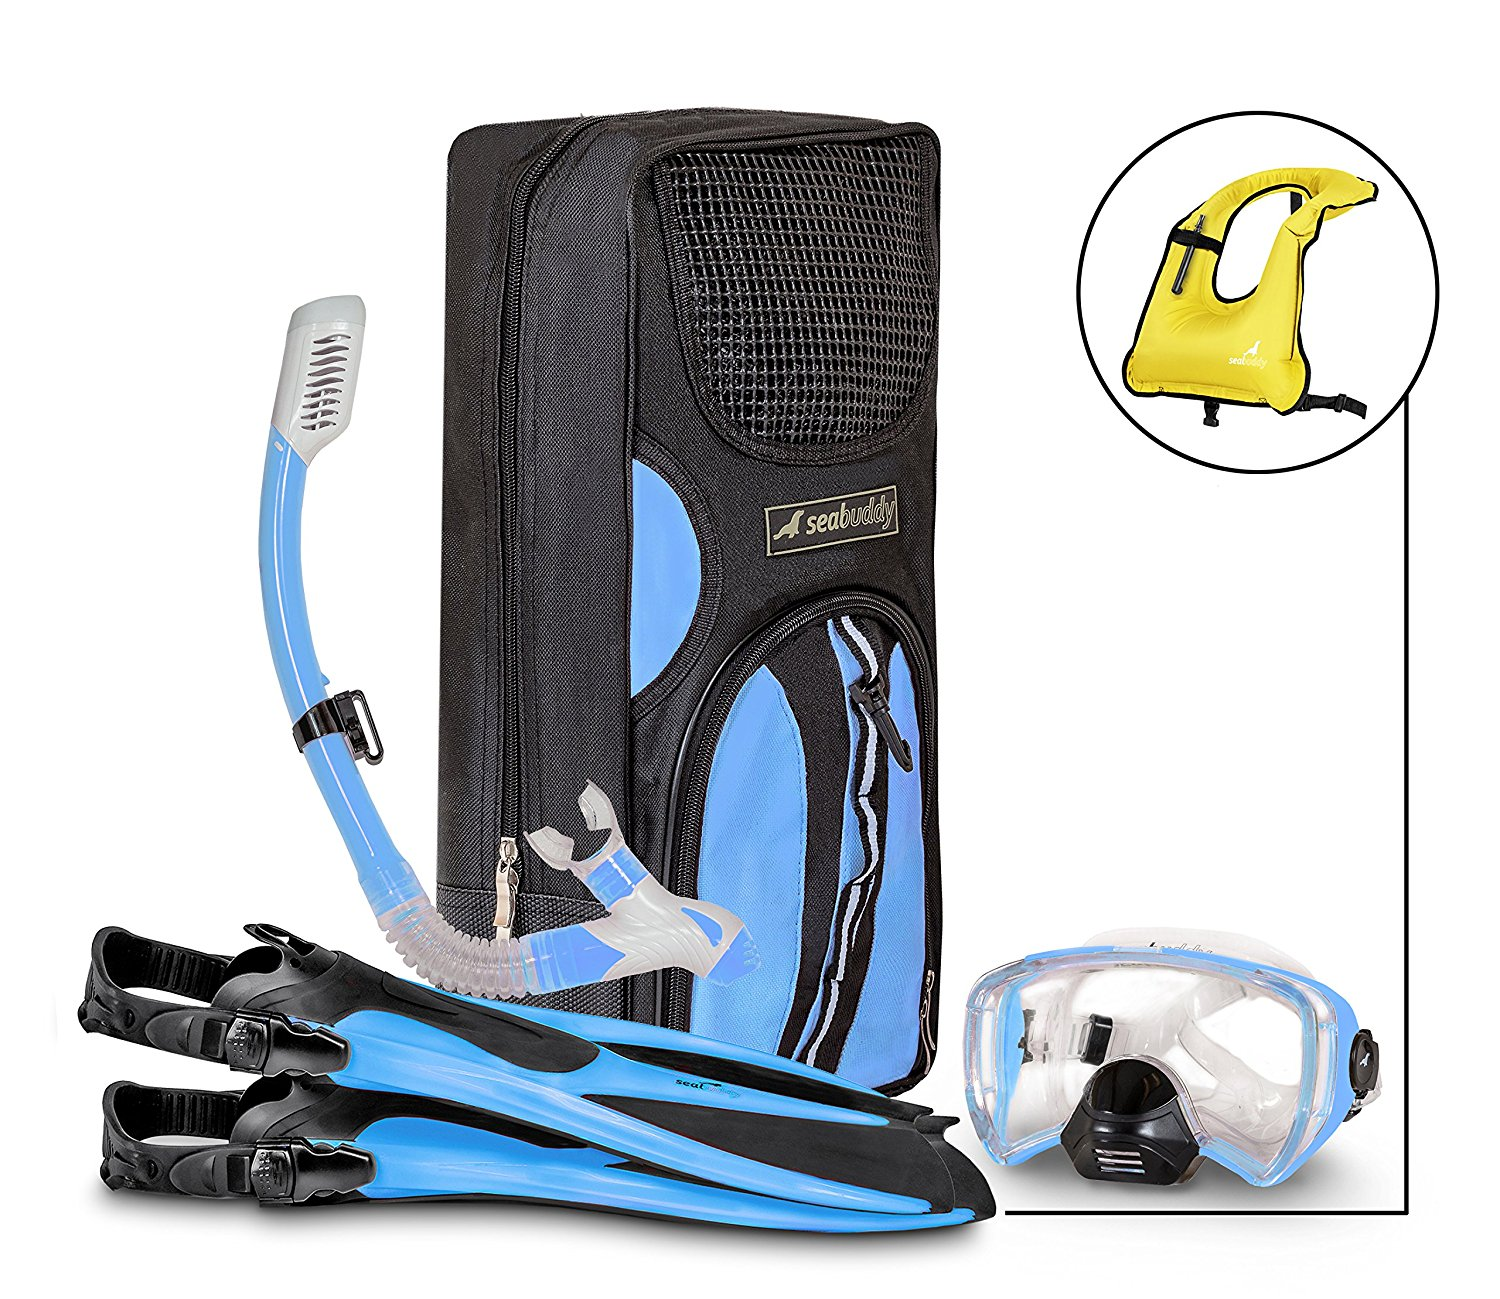 SealBuddy FIJI Panoramic Snorkel set + Premium Travel Gear Bag ~ Vest Included by Sealbuddy